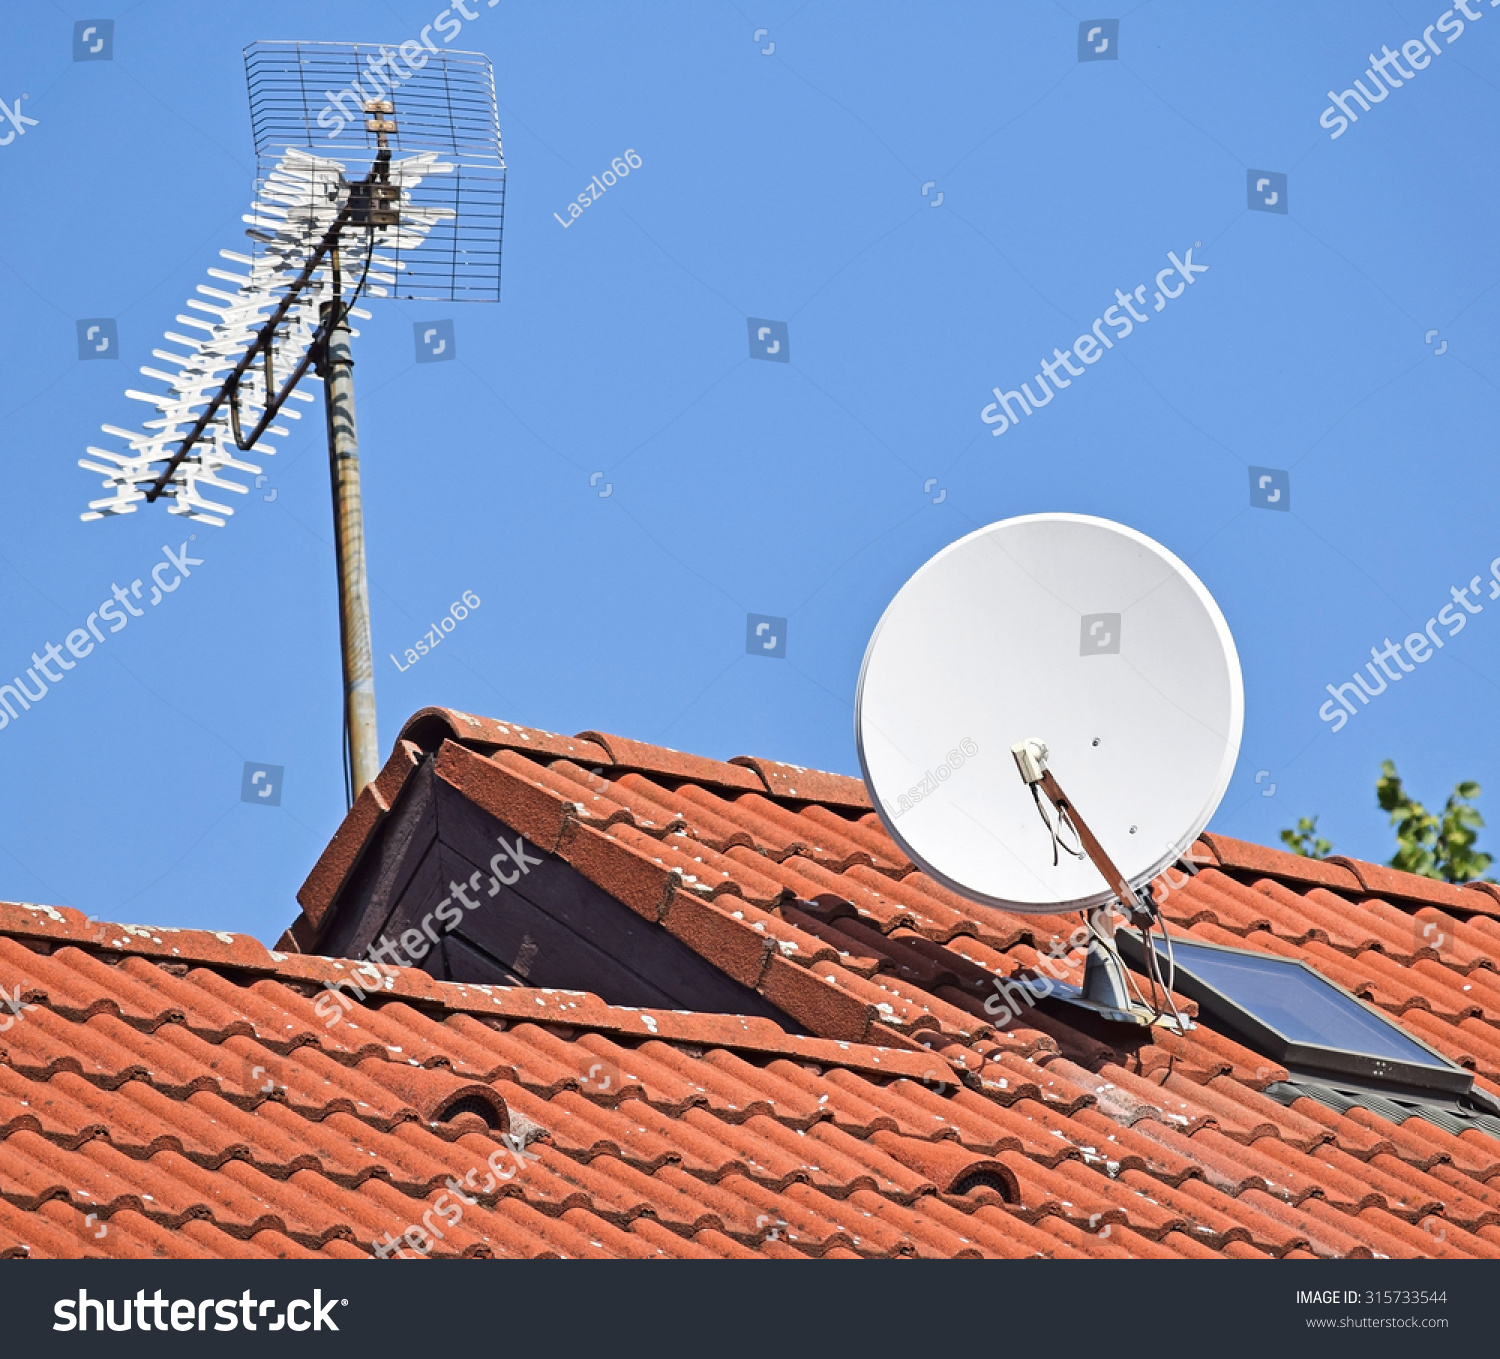 Antennas On The Roof Of A House